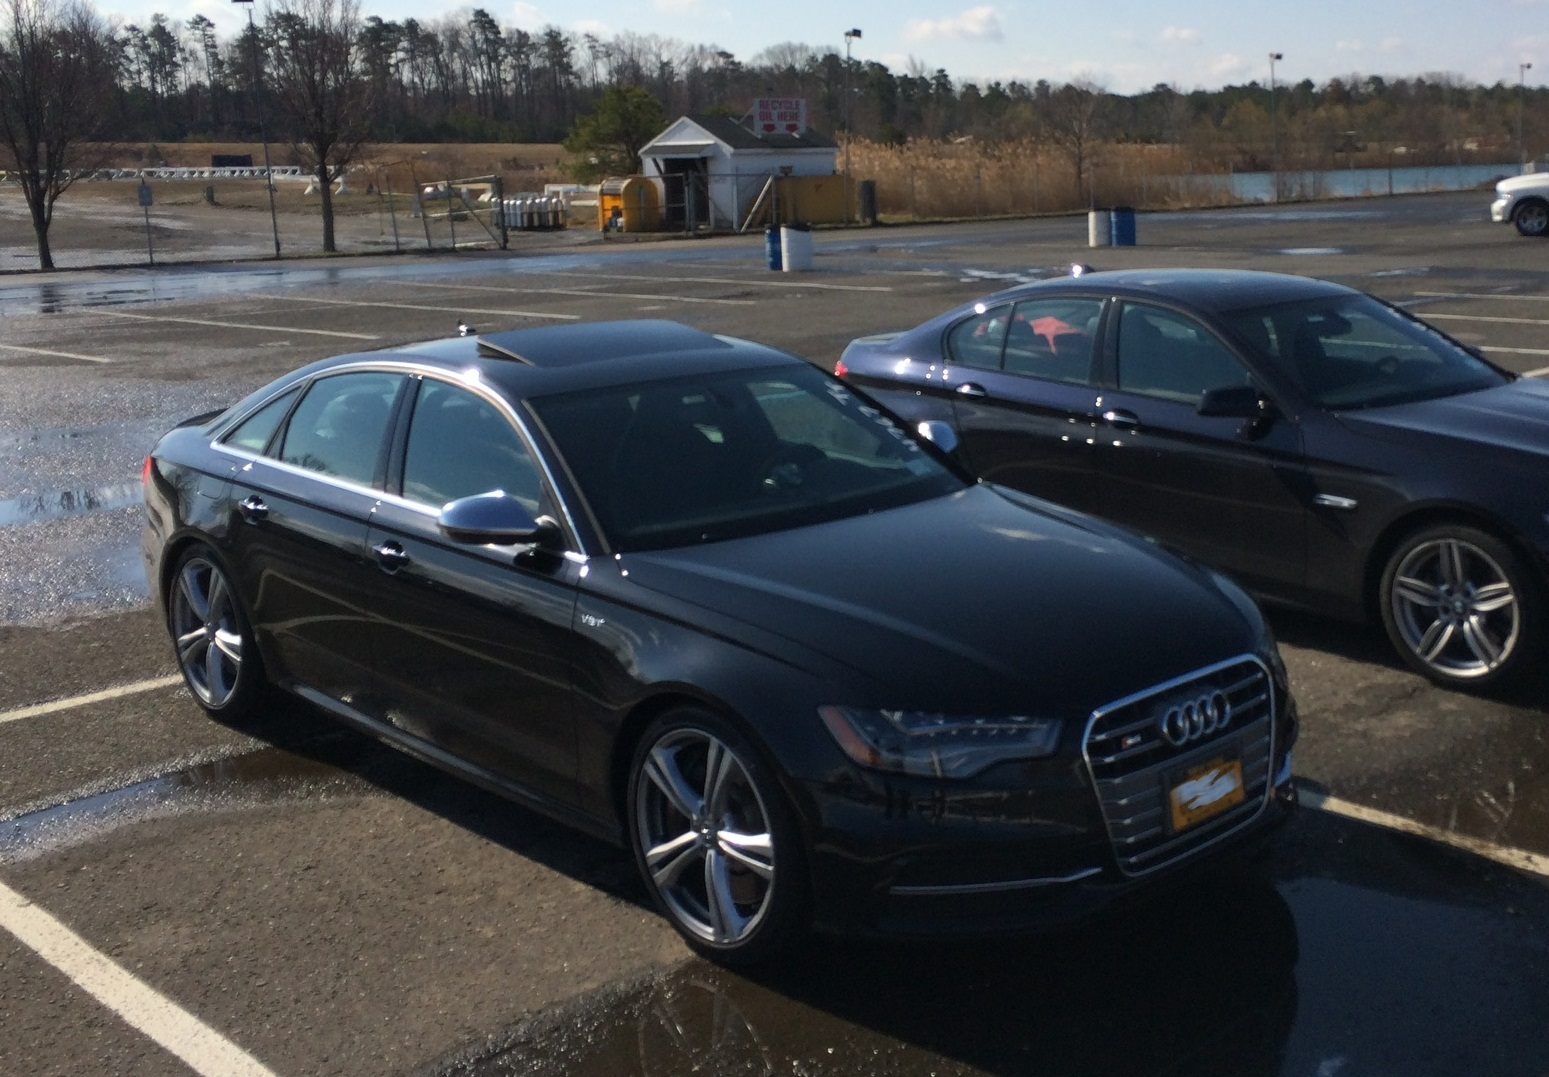 2013 Audi S6 C7 S6 1/4 mile trap speeds 0-60 - DragTimes.com